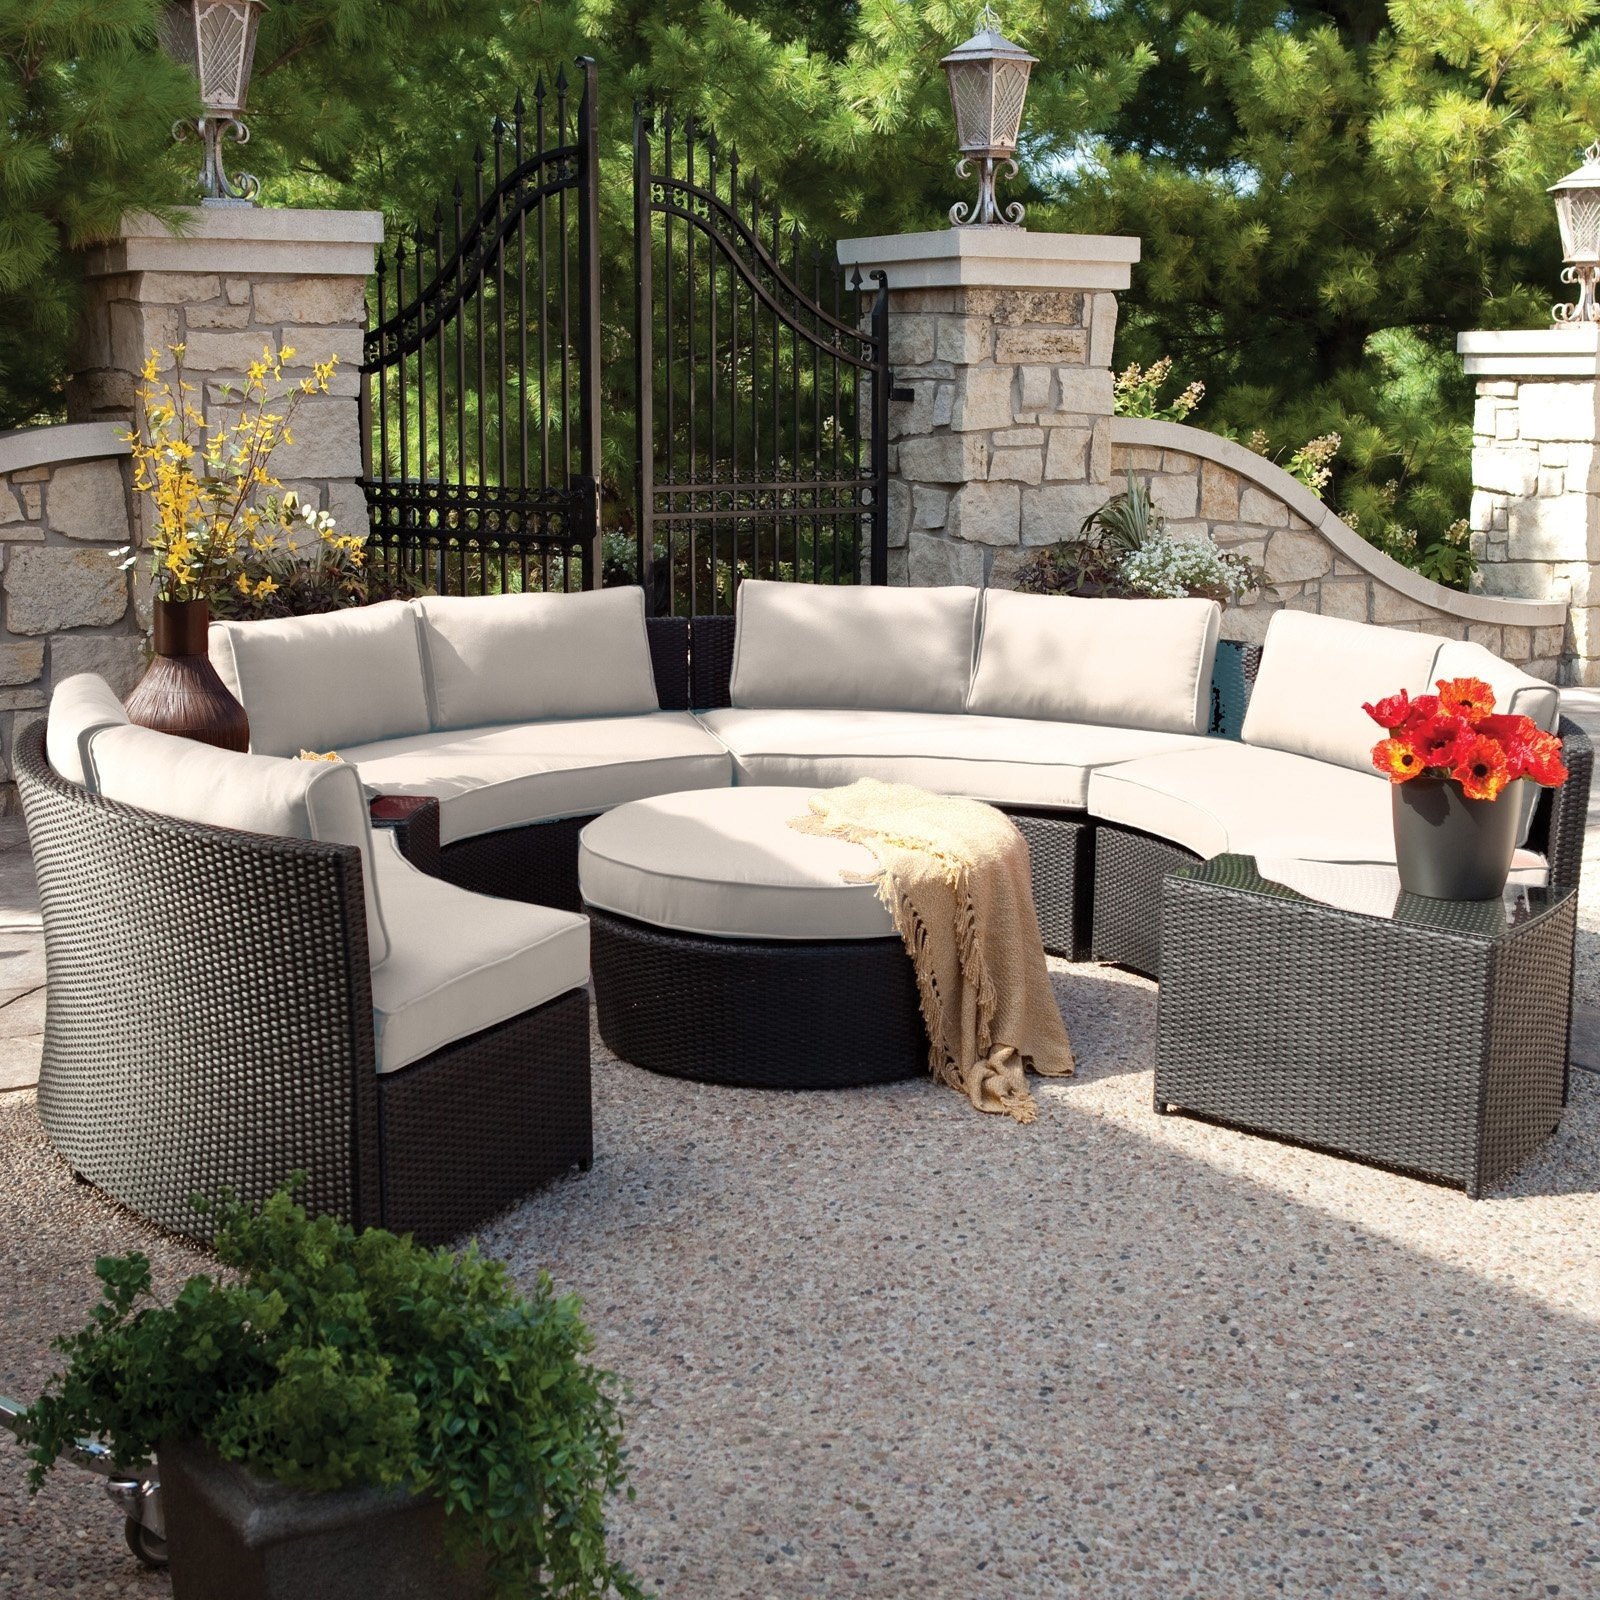 Belham Living Meridian Round Outdoor Wicker Patio Furniture Set With Regarding Recent Patio Conversation Sets With Sunbrella Cushions (View 5 of 15)